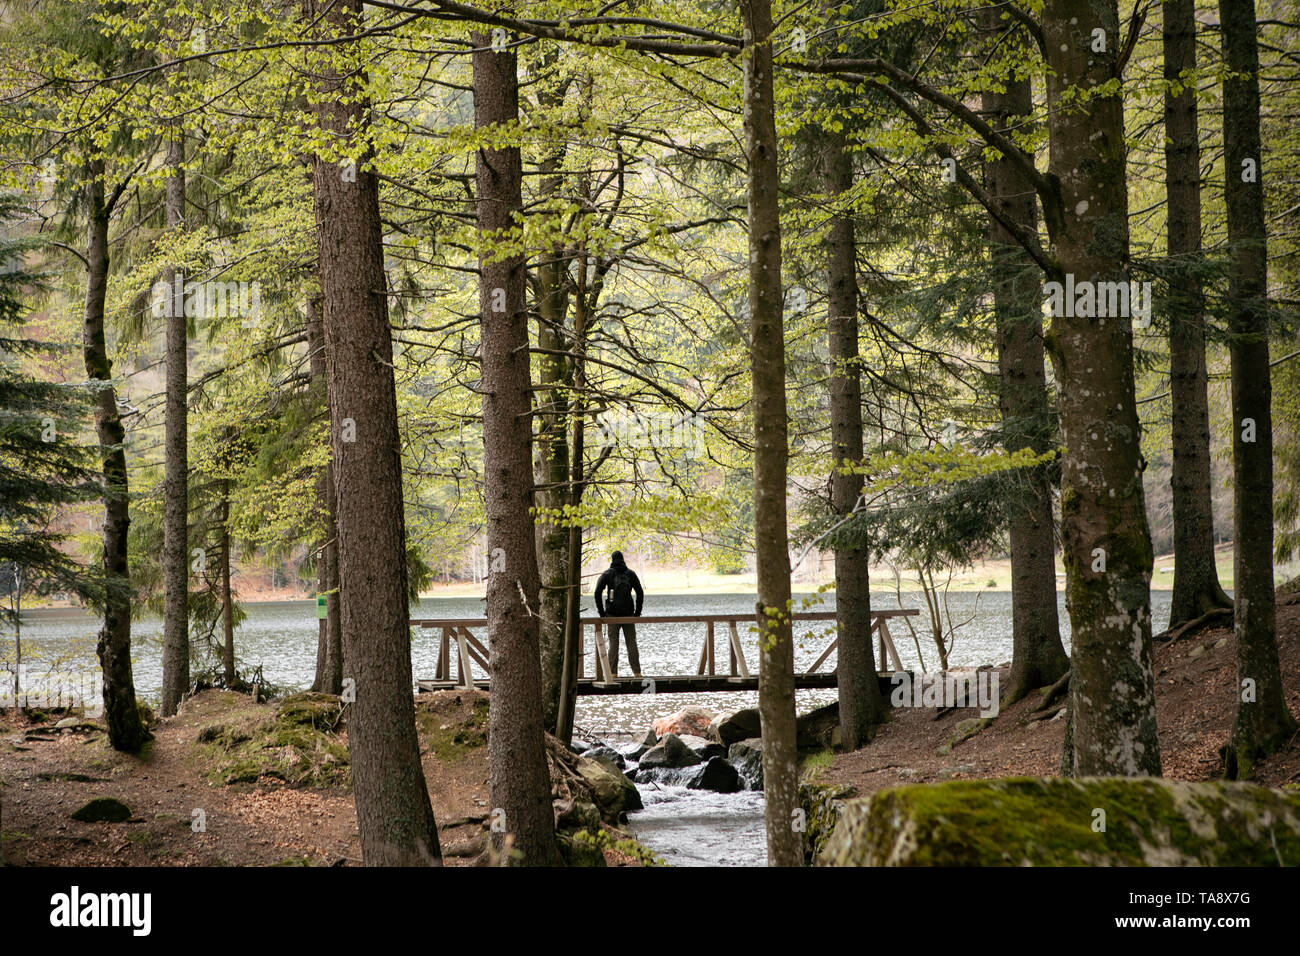 Dark silhouette of man standing on the wooden bridge in the forest. Mountain lake and stream. Hiking in forest. Natur park hiking trail. Black forest. - Stock Image